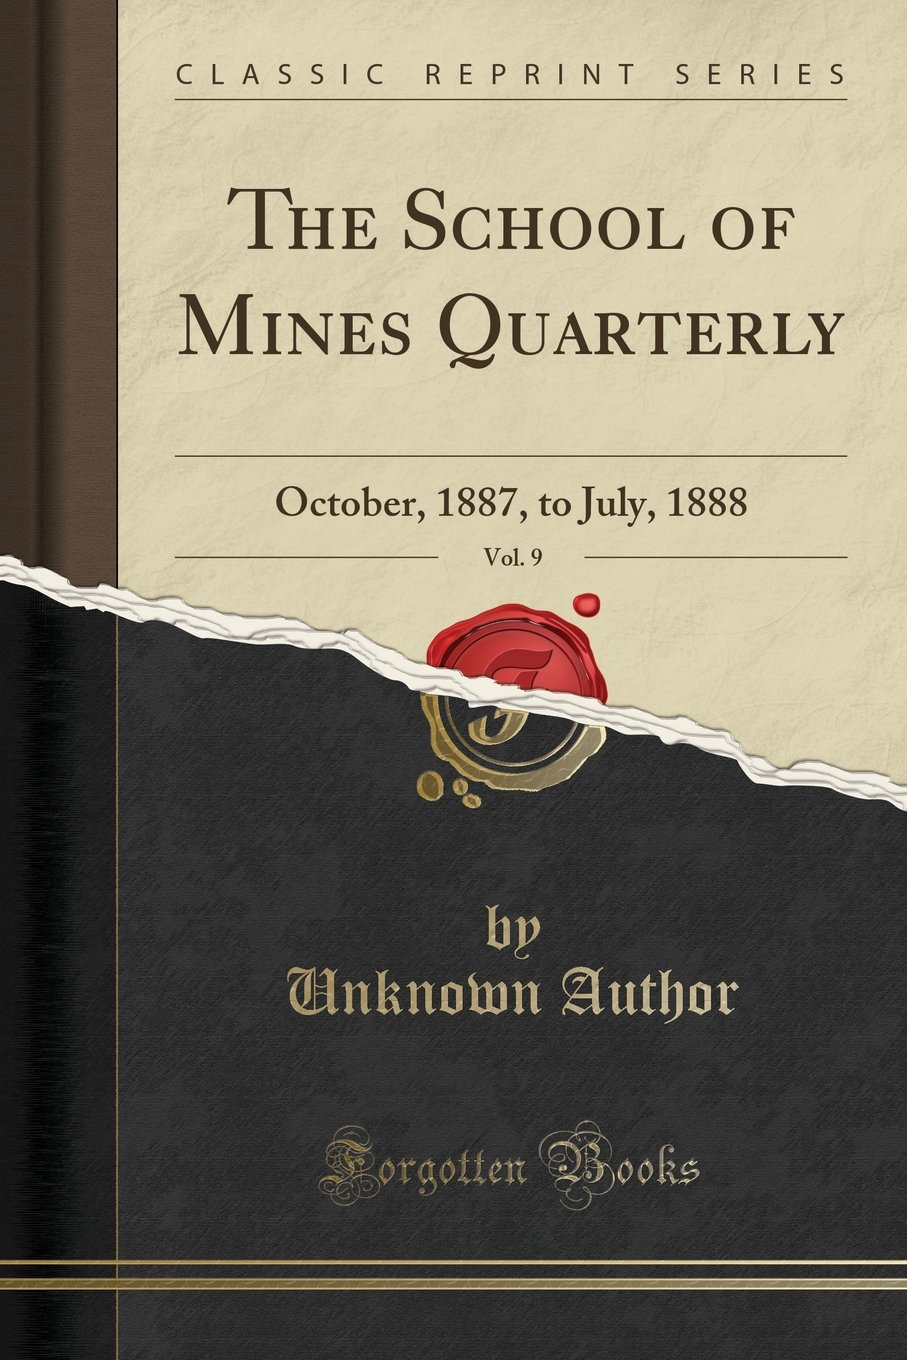 The School of Mines Quarterly, Vol. 9: October, 1887, to July, 1888 (Classic Reprint) pdf